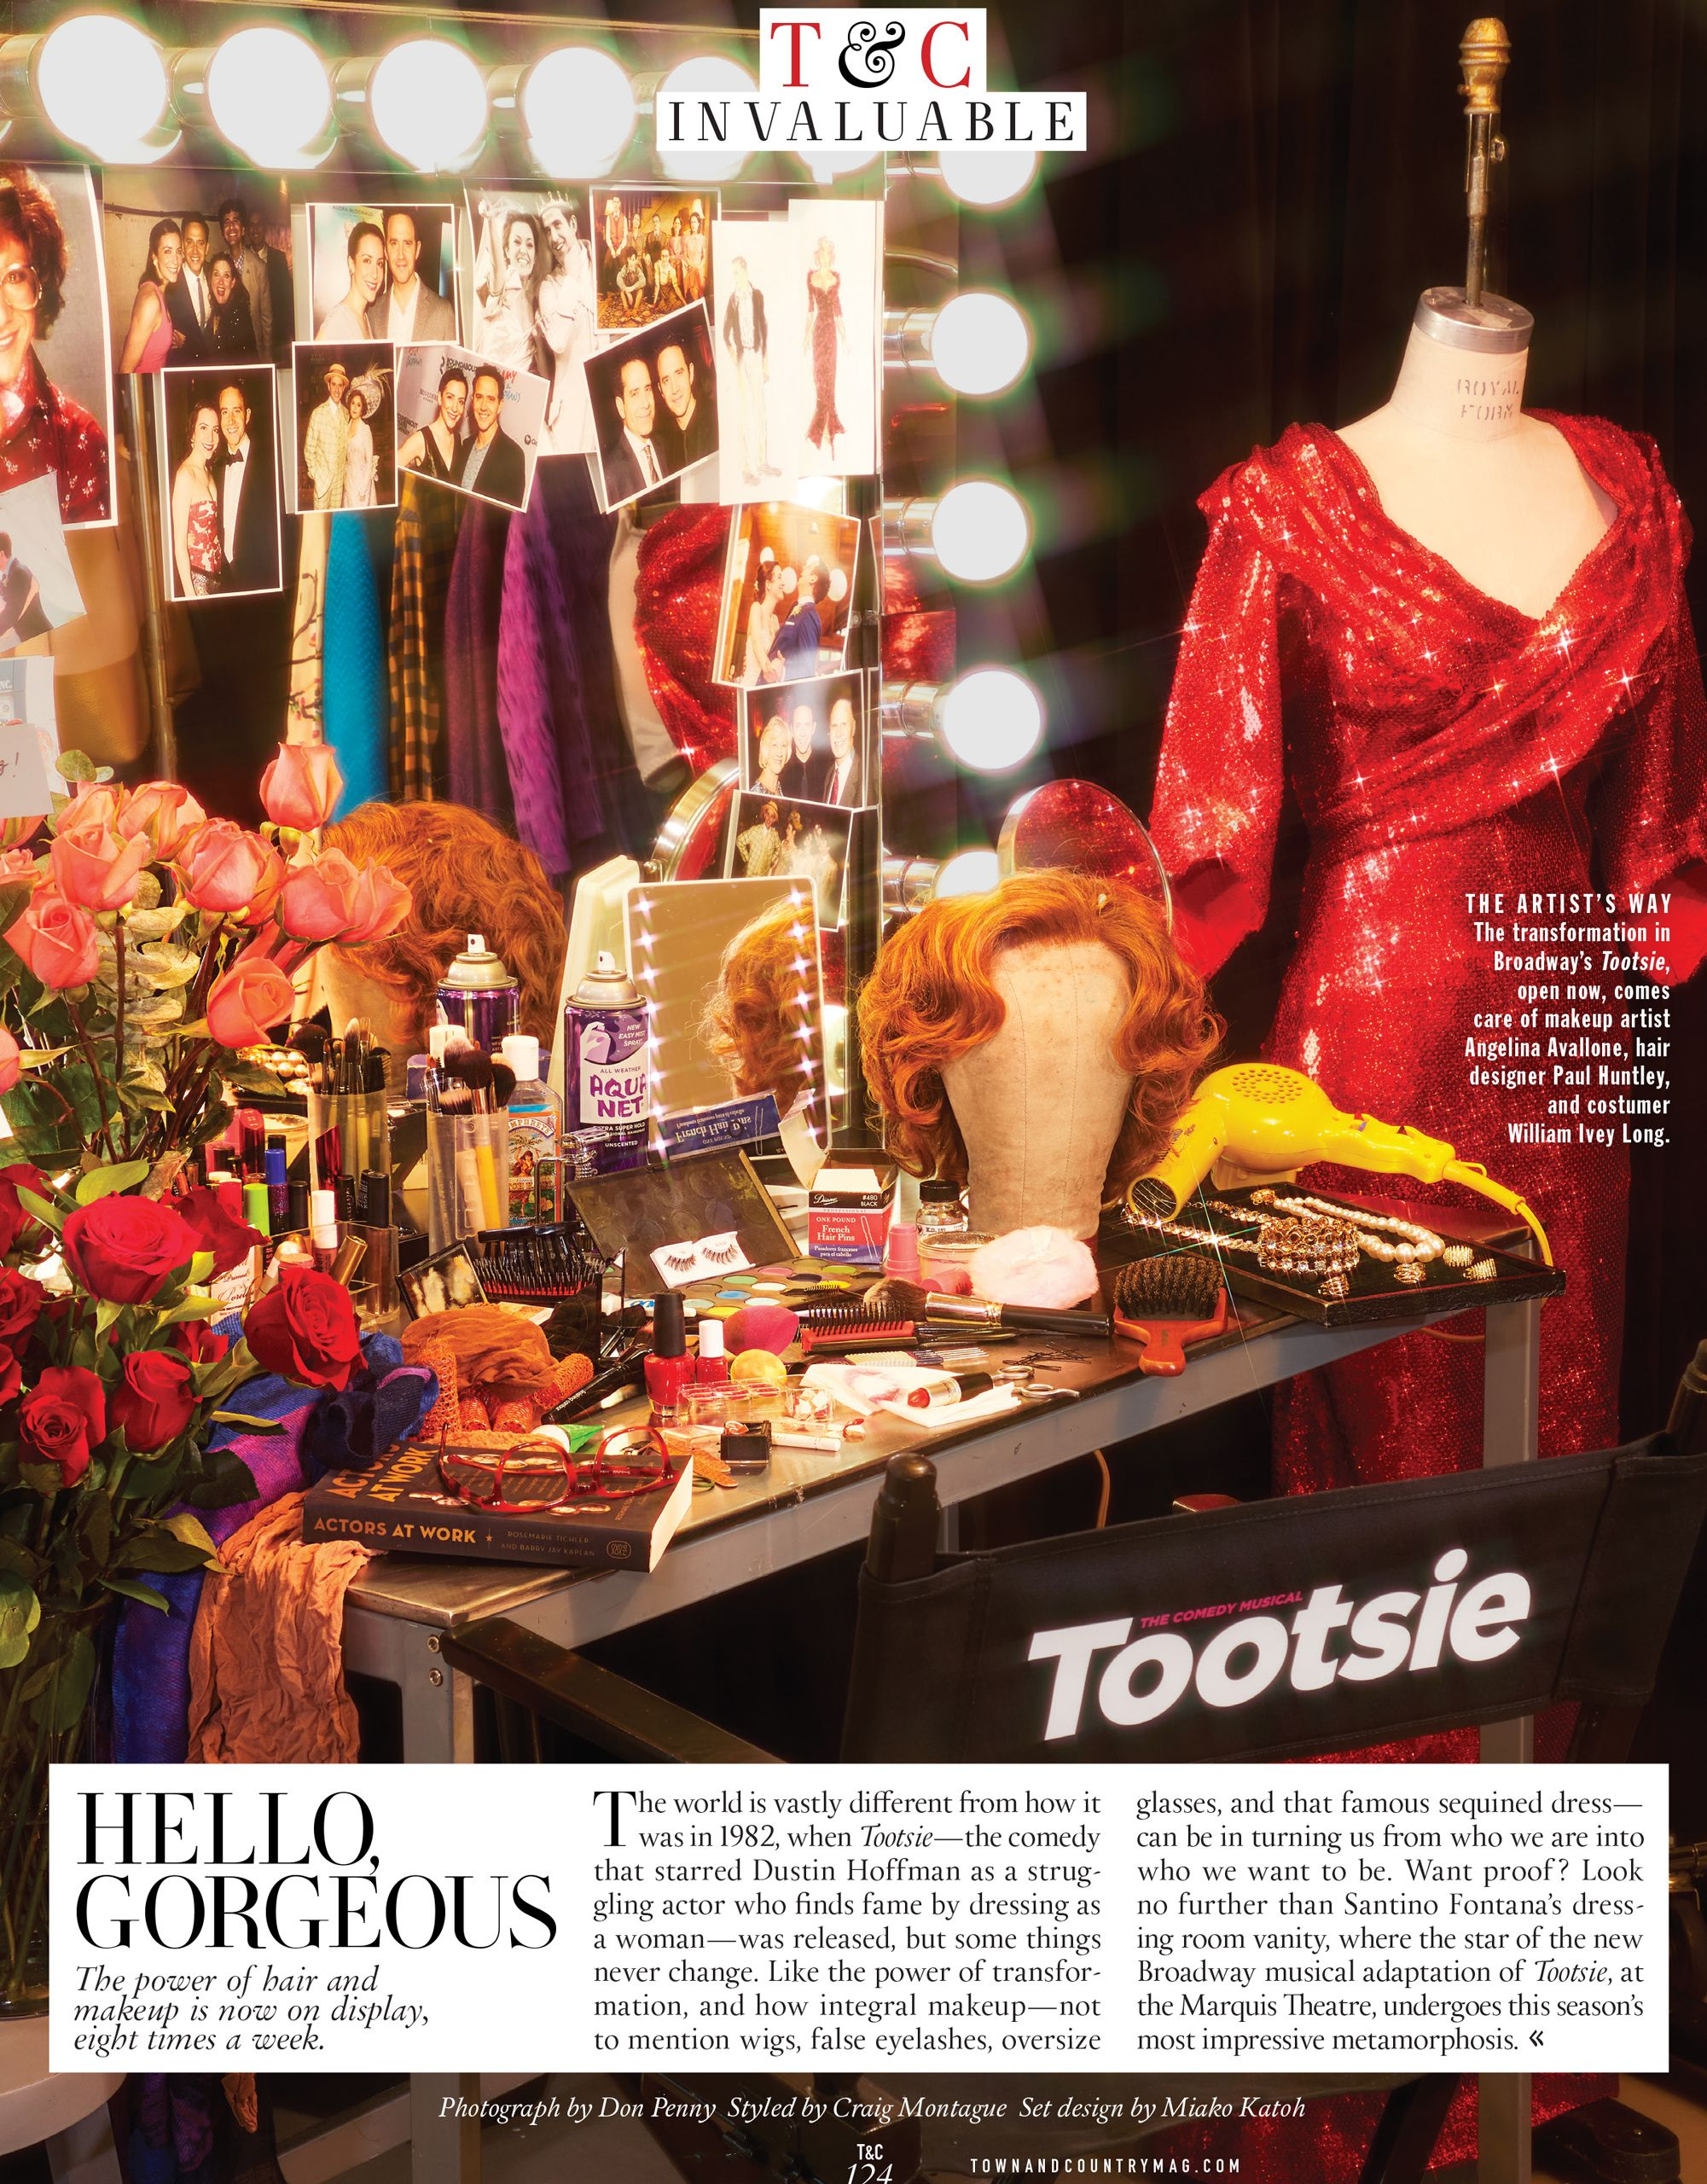 Town and Country Invaluable. Tootsie